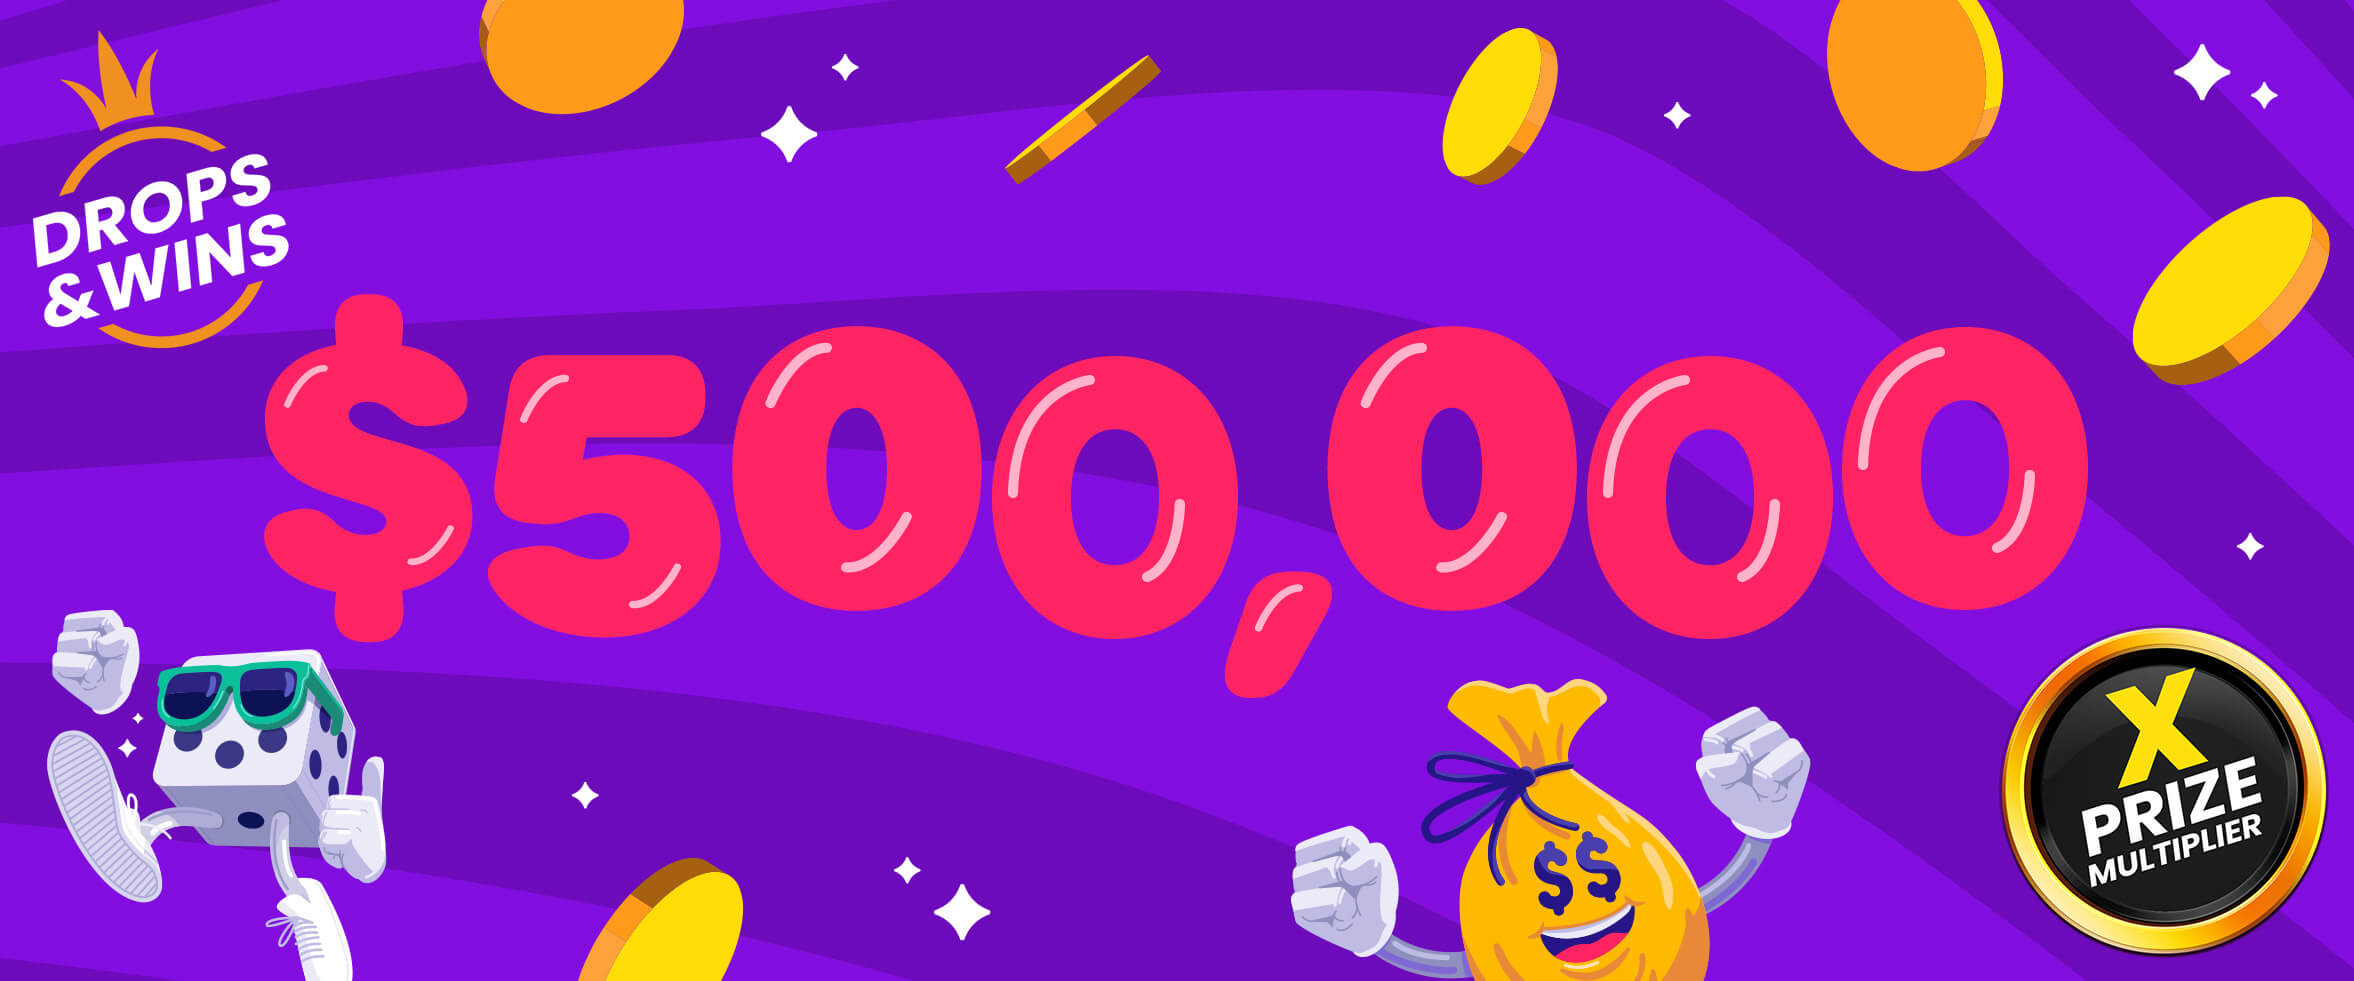 Pragmatic Play Doubles Drops & Win Monthly Prizes to $500K